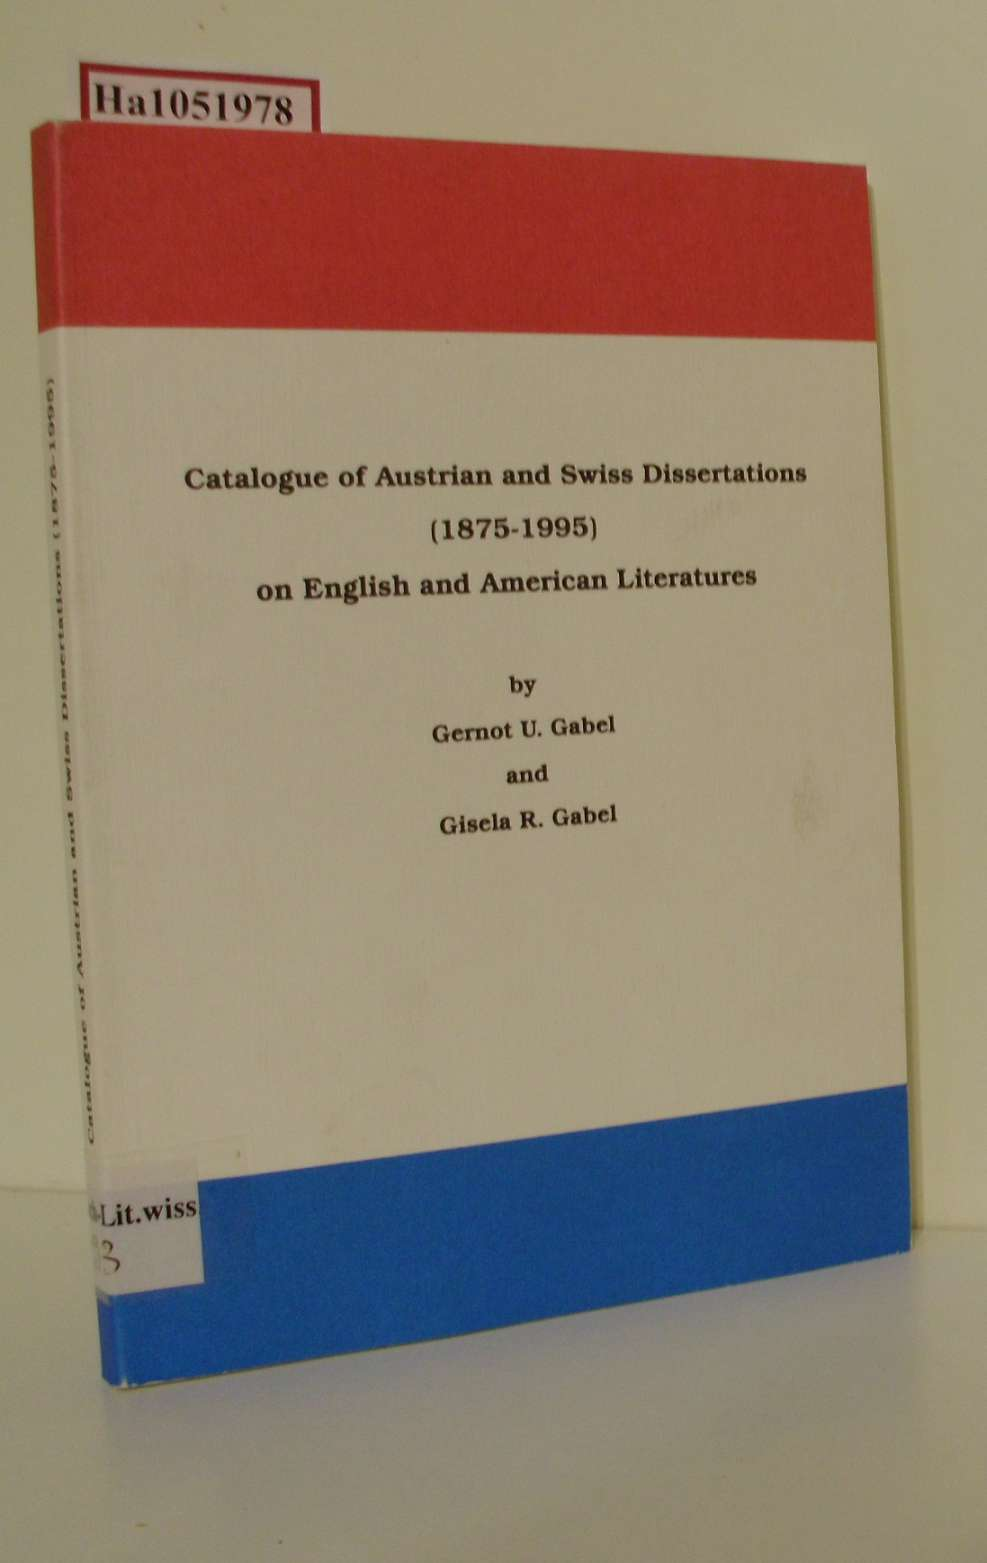 Catalogue of Austrian and Swiss Dissertations (1875-1995) on English and American Literatures.